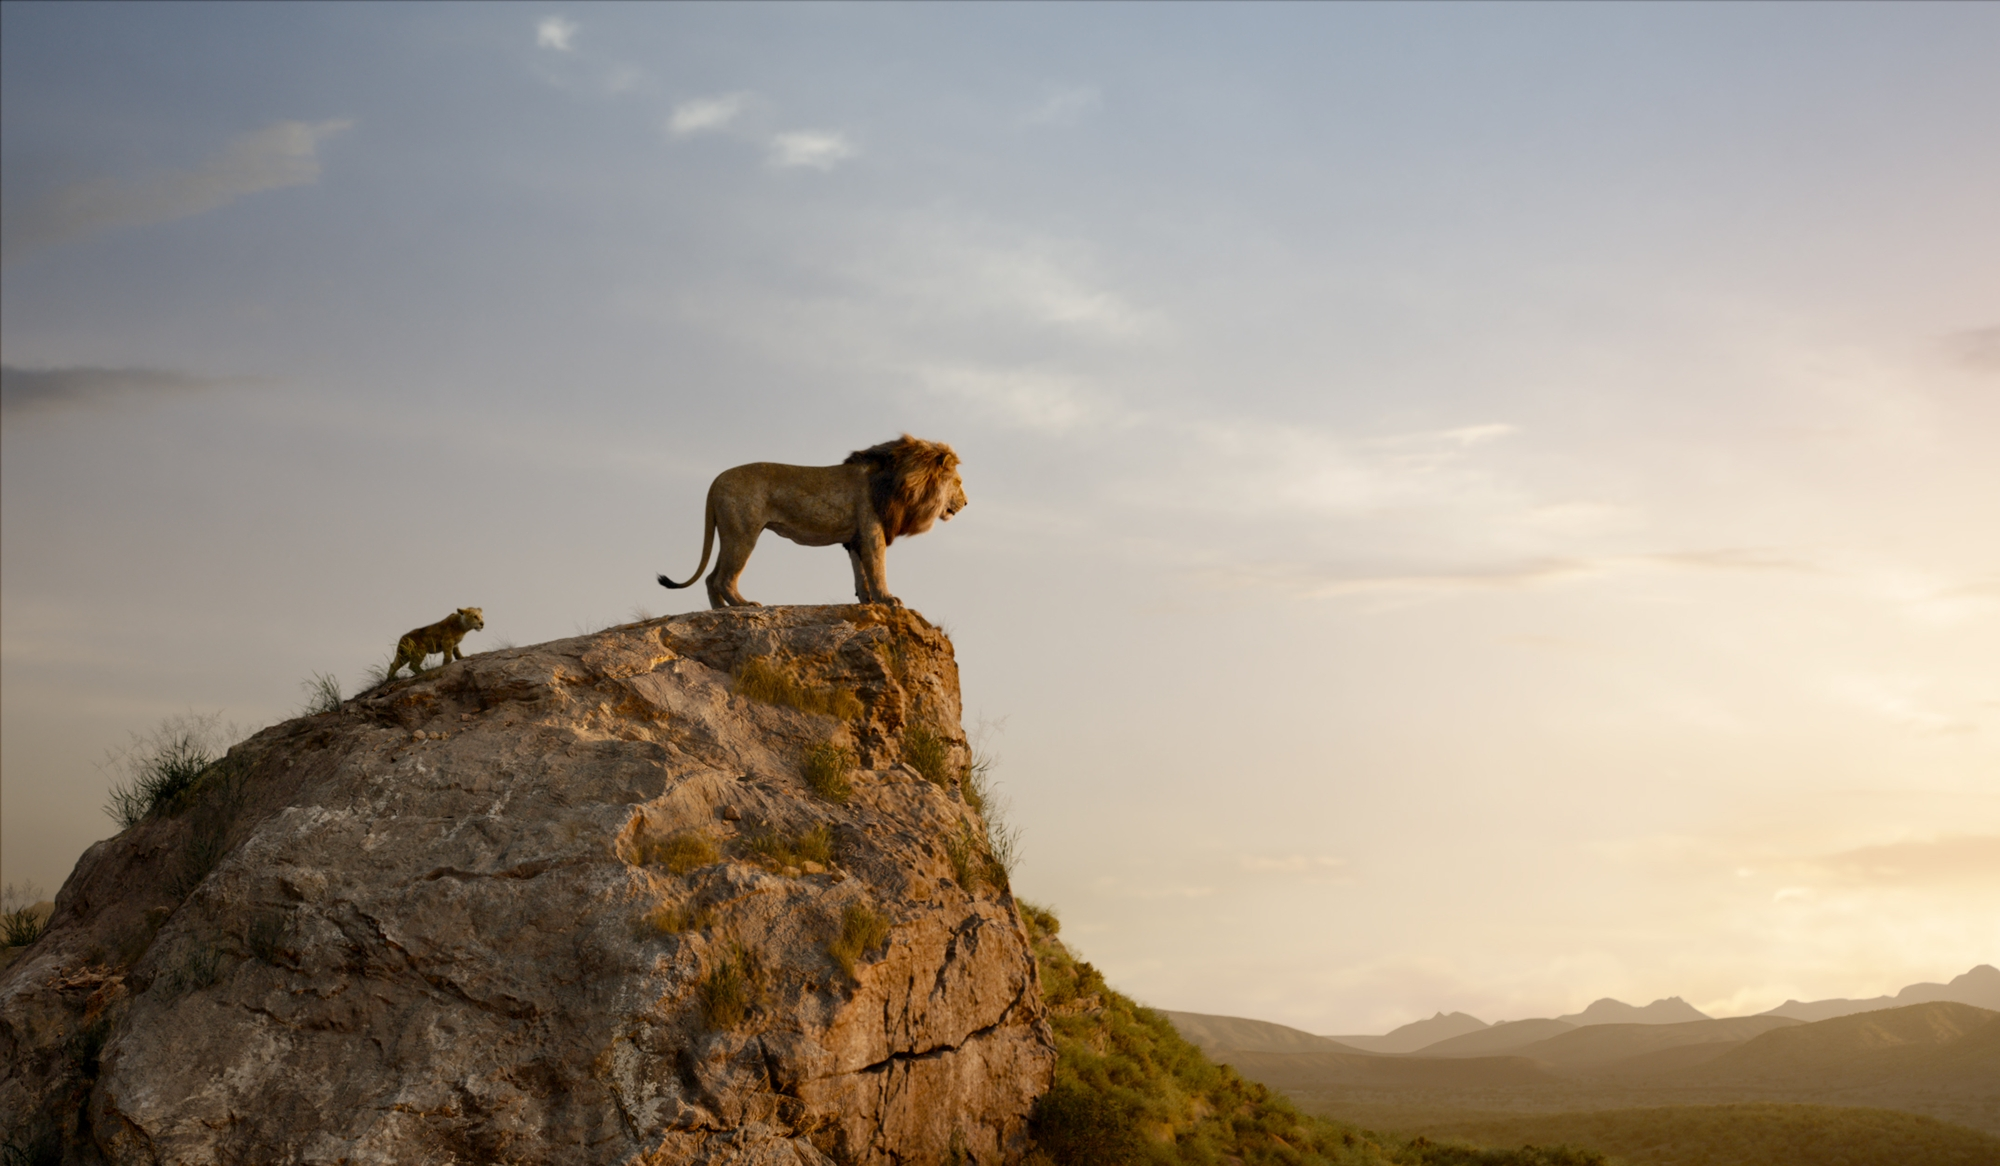 Rob Legato Uses Blackmagic Design To Create Virtual Production For The Lion King Business Wire